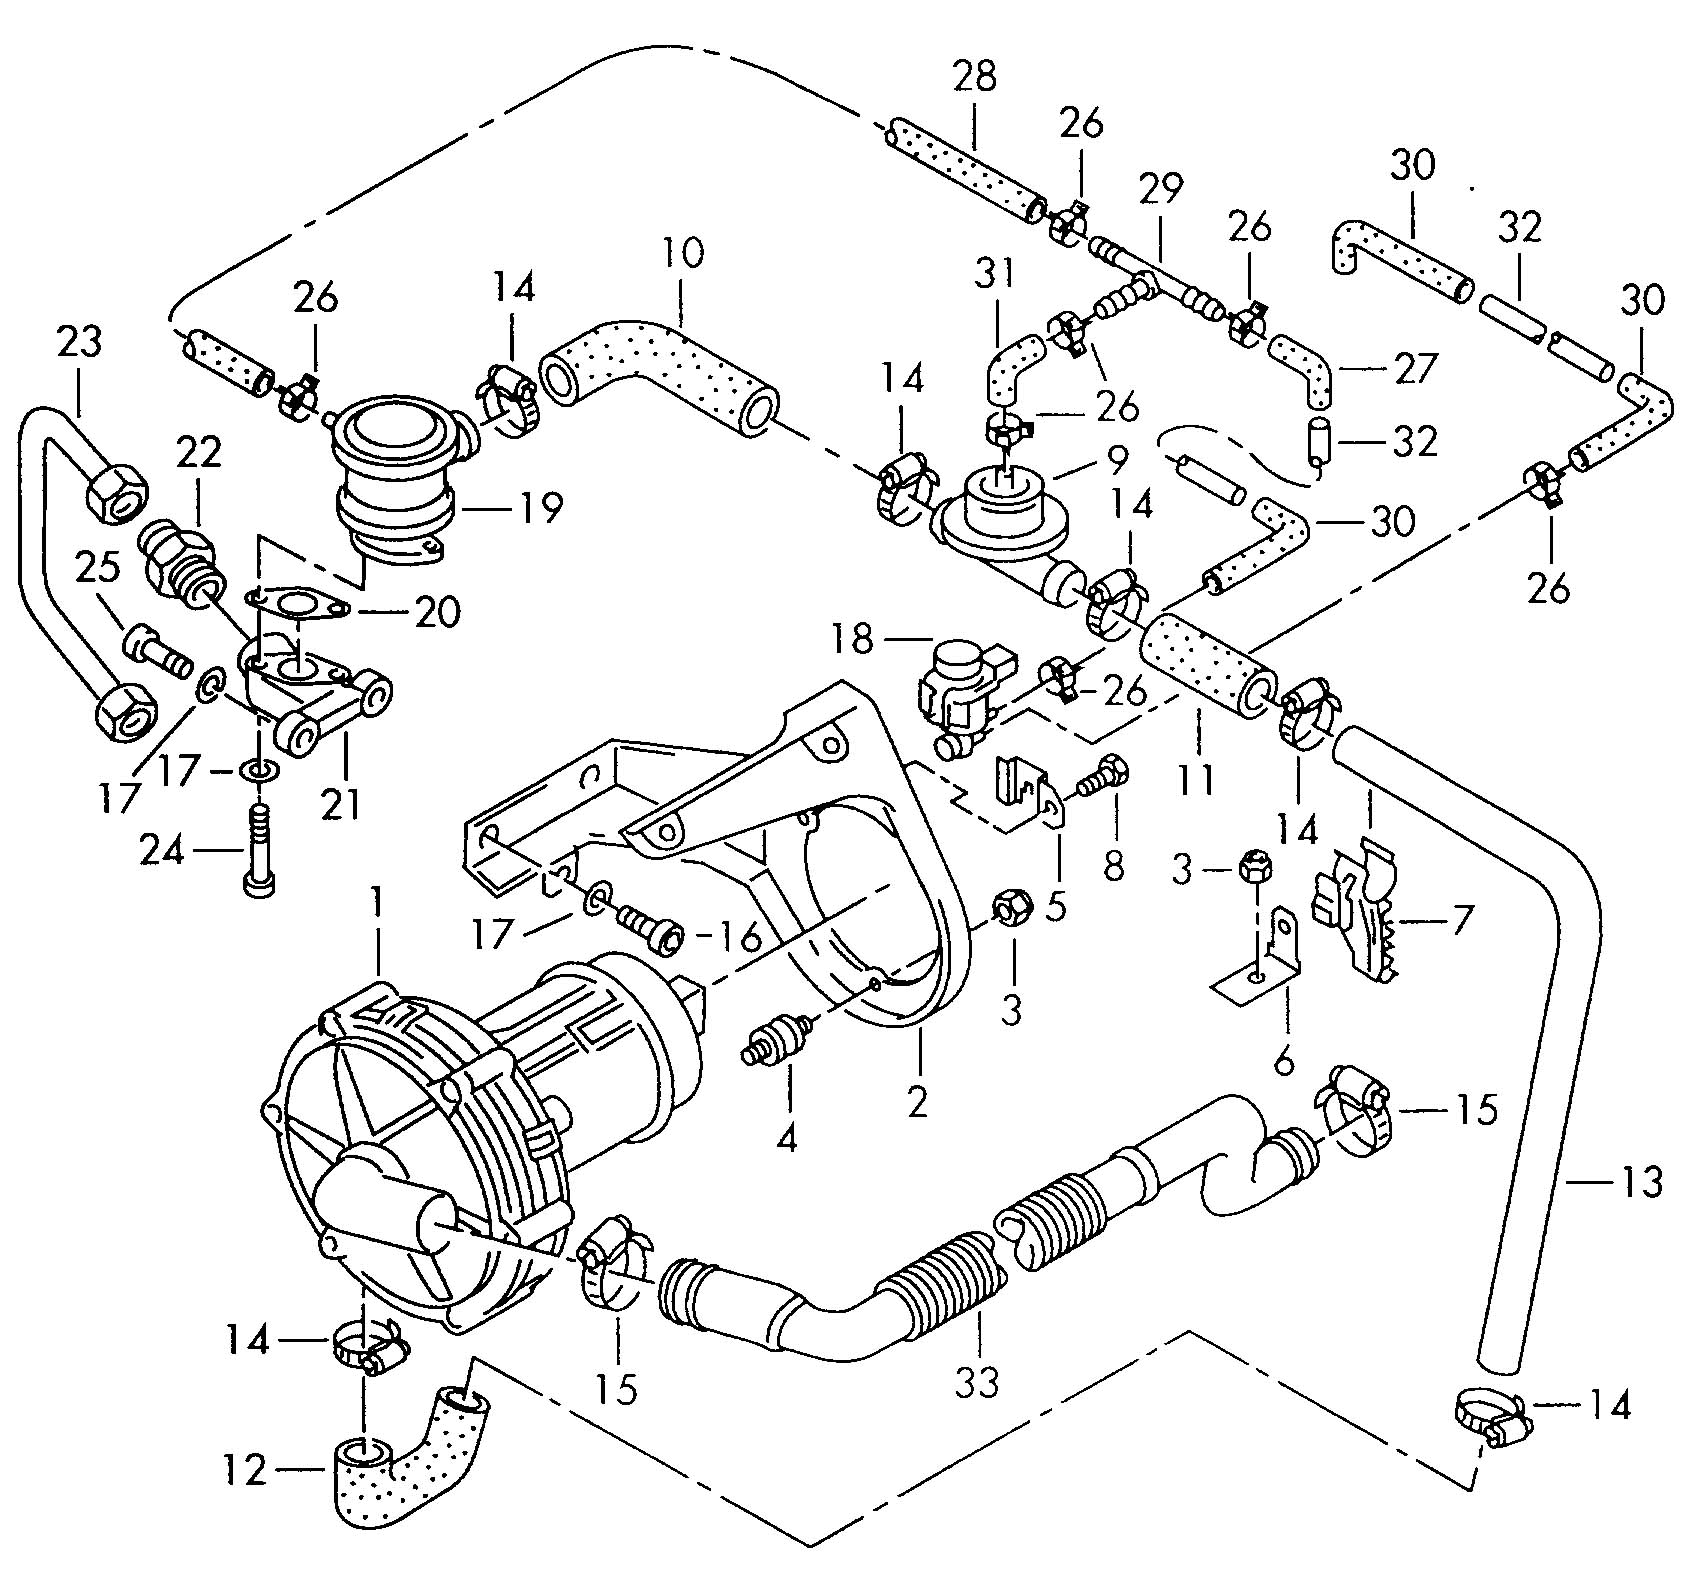 Audi A4 B7 Fuse Box Diagram Audi Auto Fuse Box Diagram